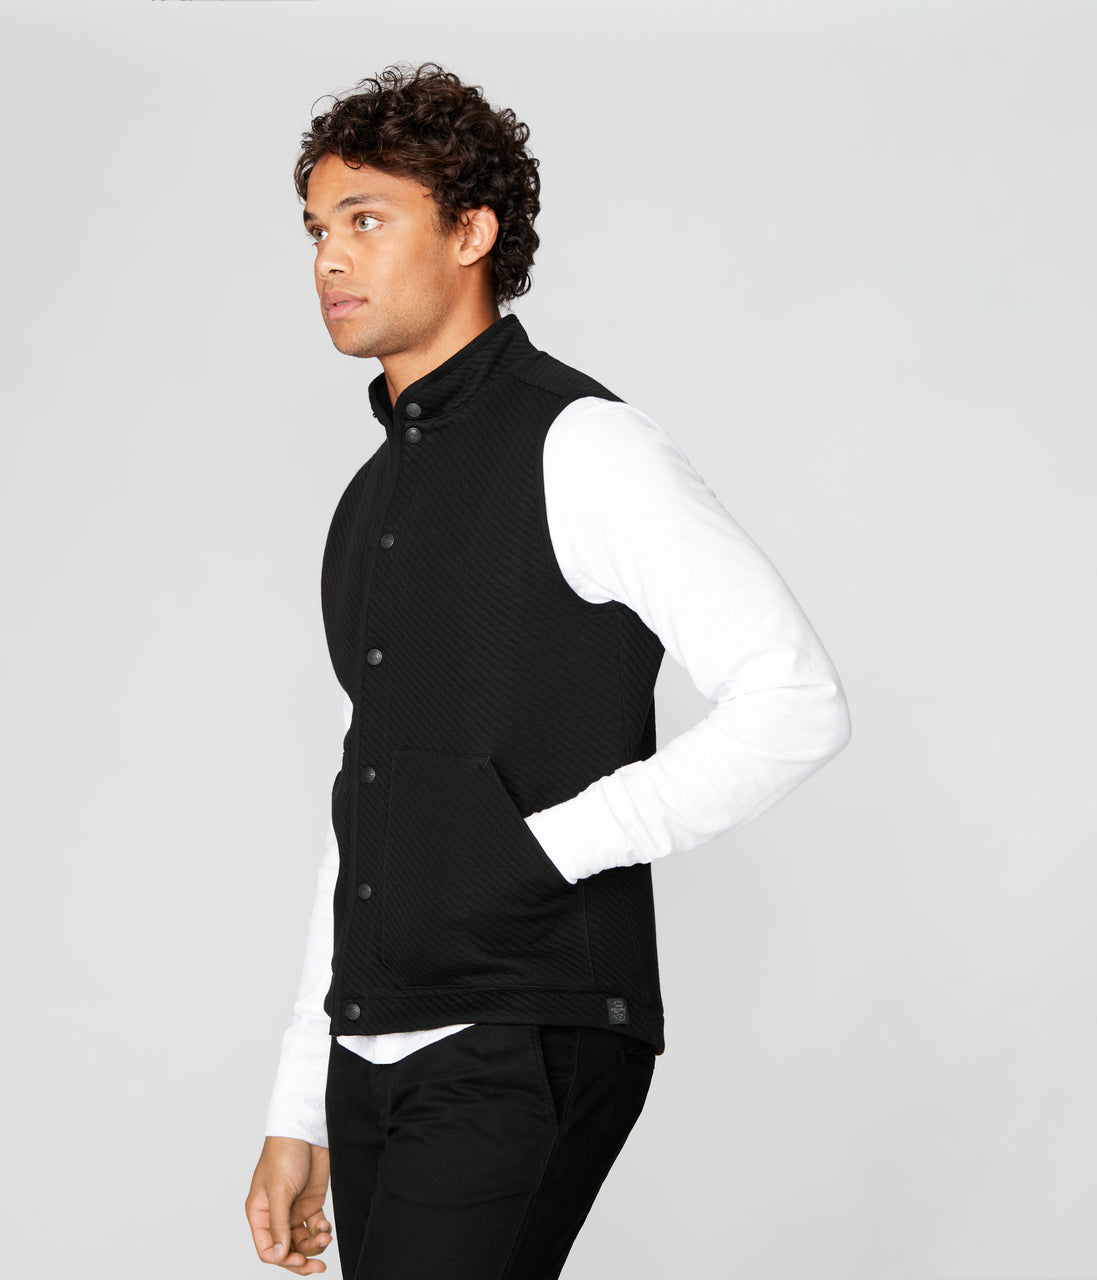 Fuji Shirt Jacket Vest in Twill Knit Jacquard - Black - Good Man Brand - Fuji Shirt Jacket Vest in Twill Knit Jacquard - Black